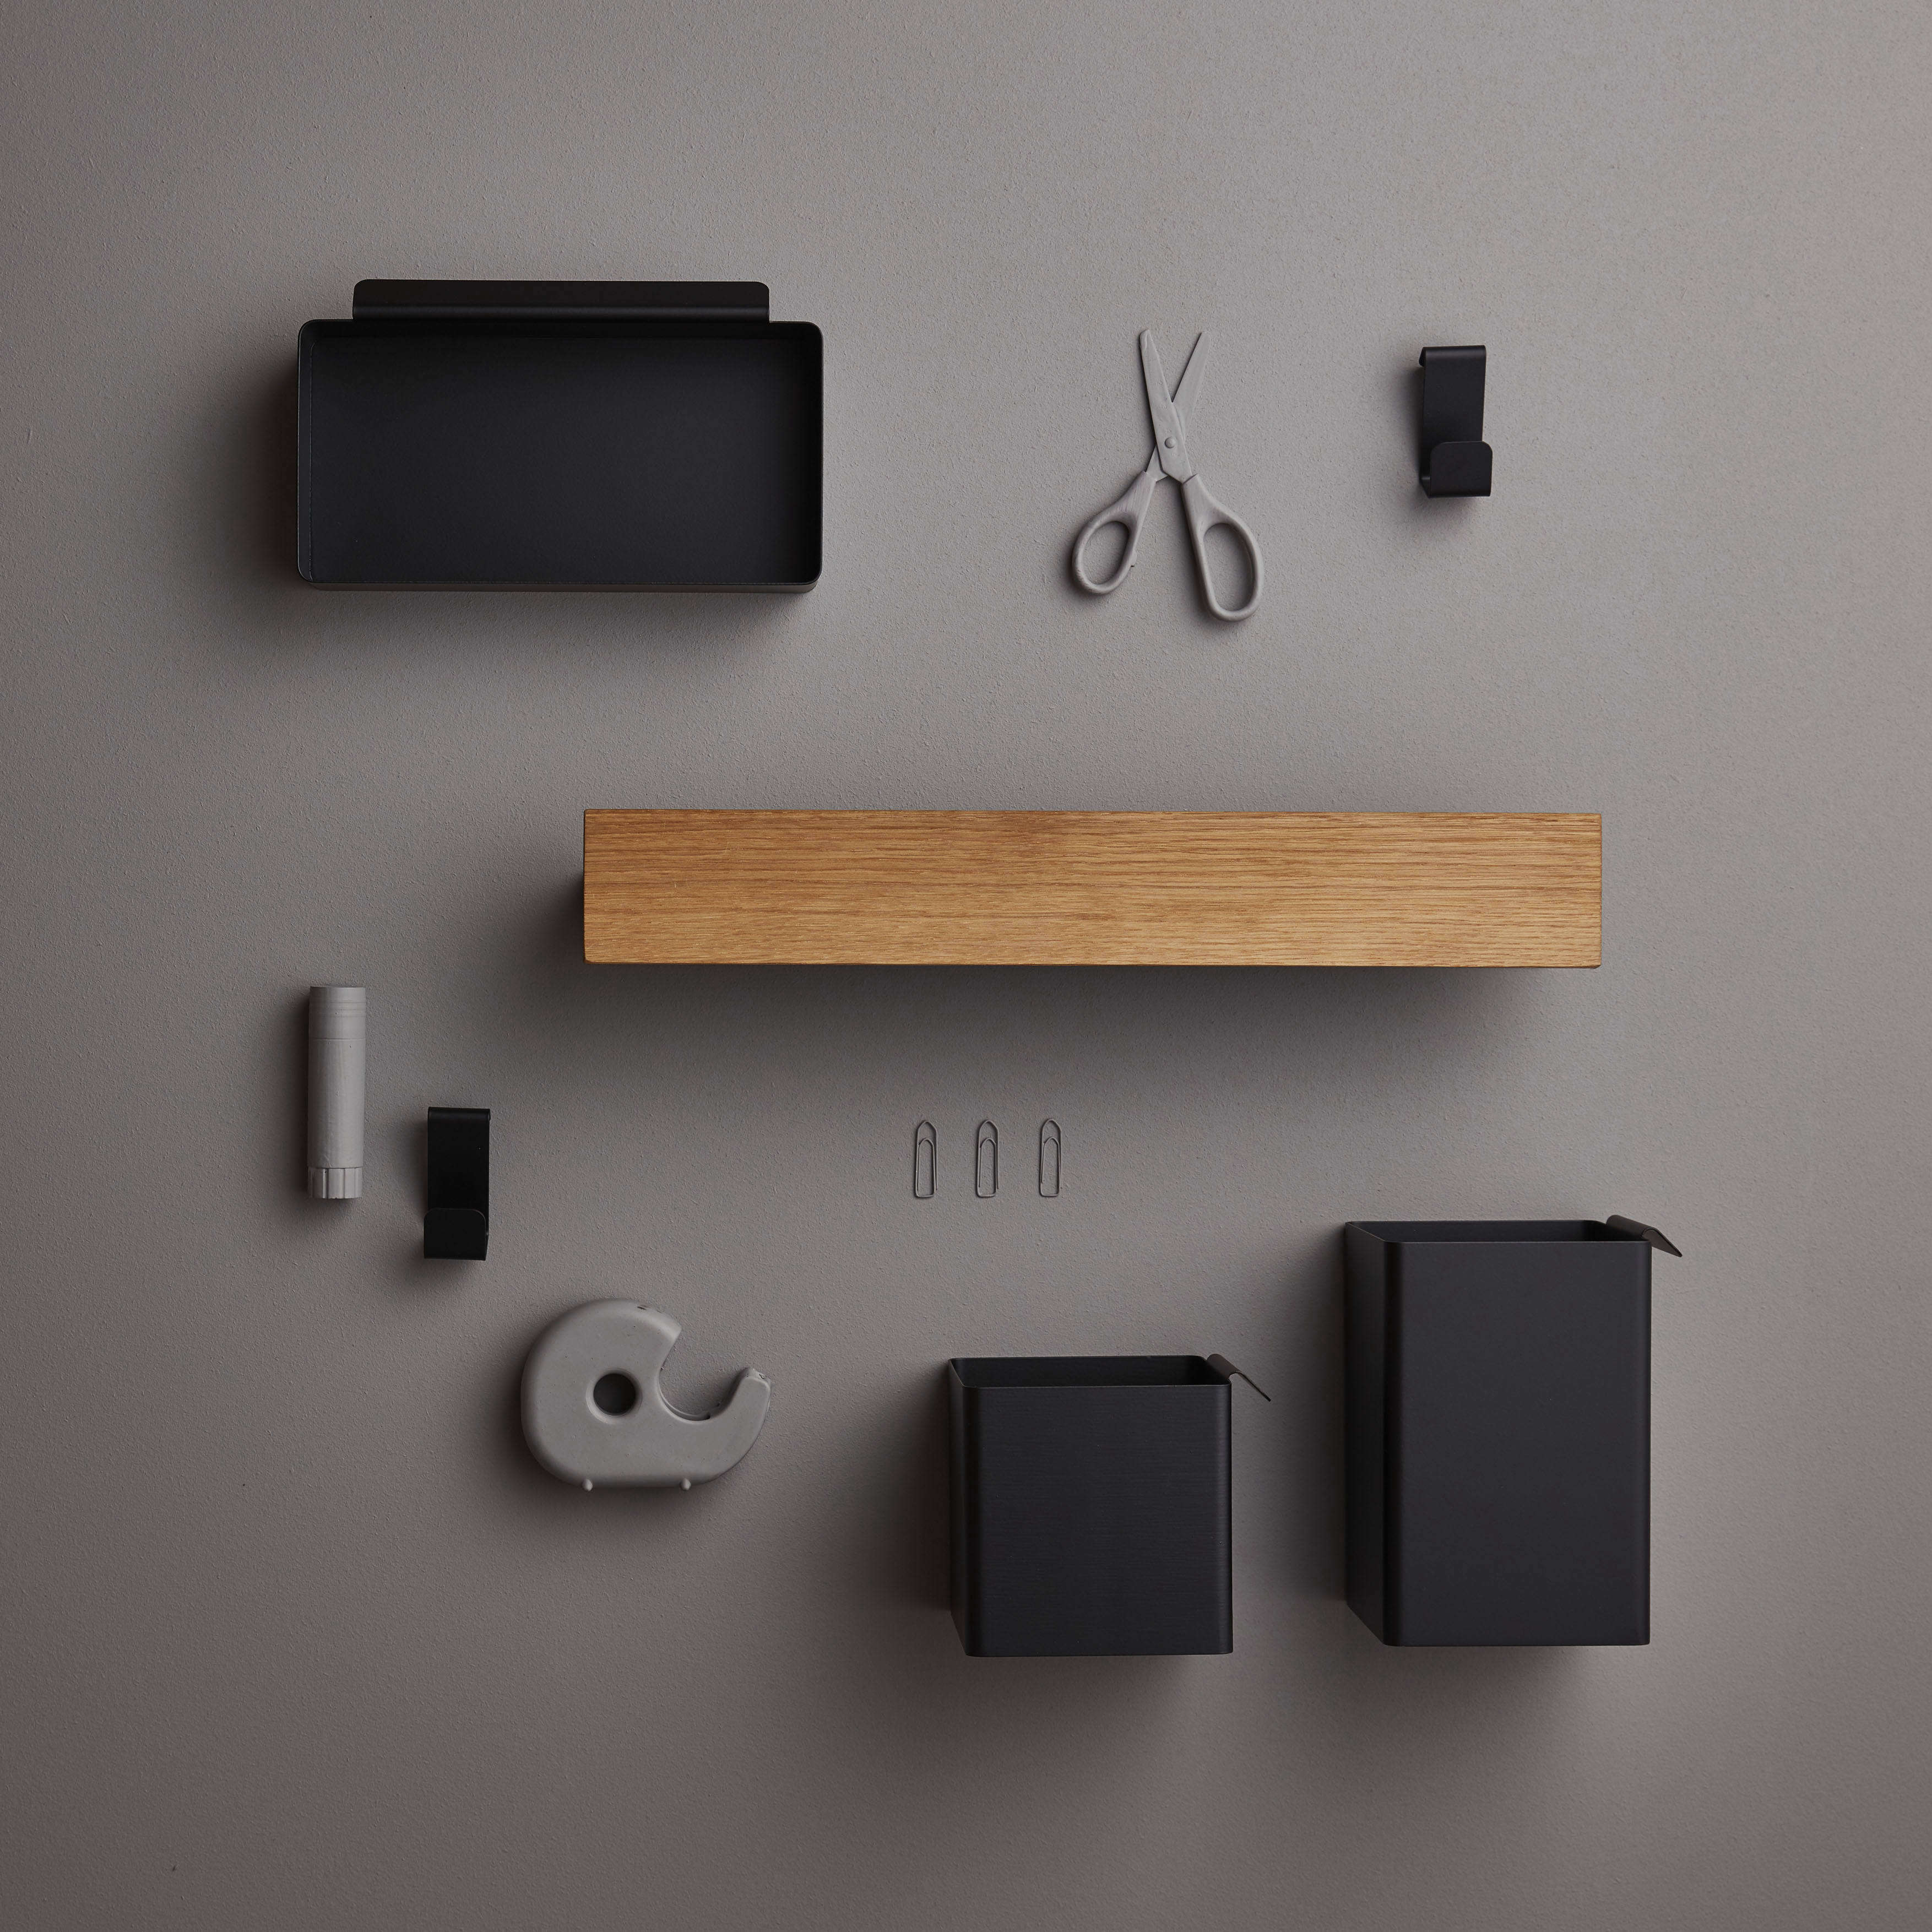 Gejst Flex system shelf and add-on components.